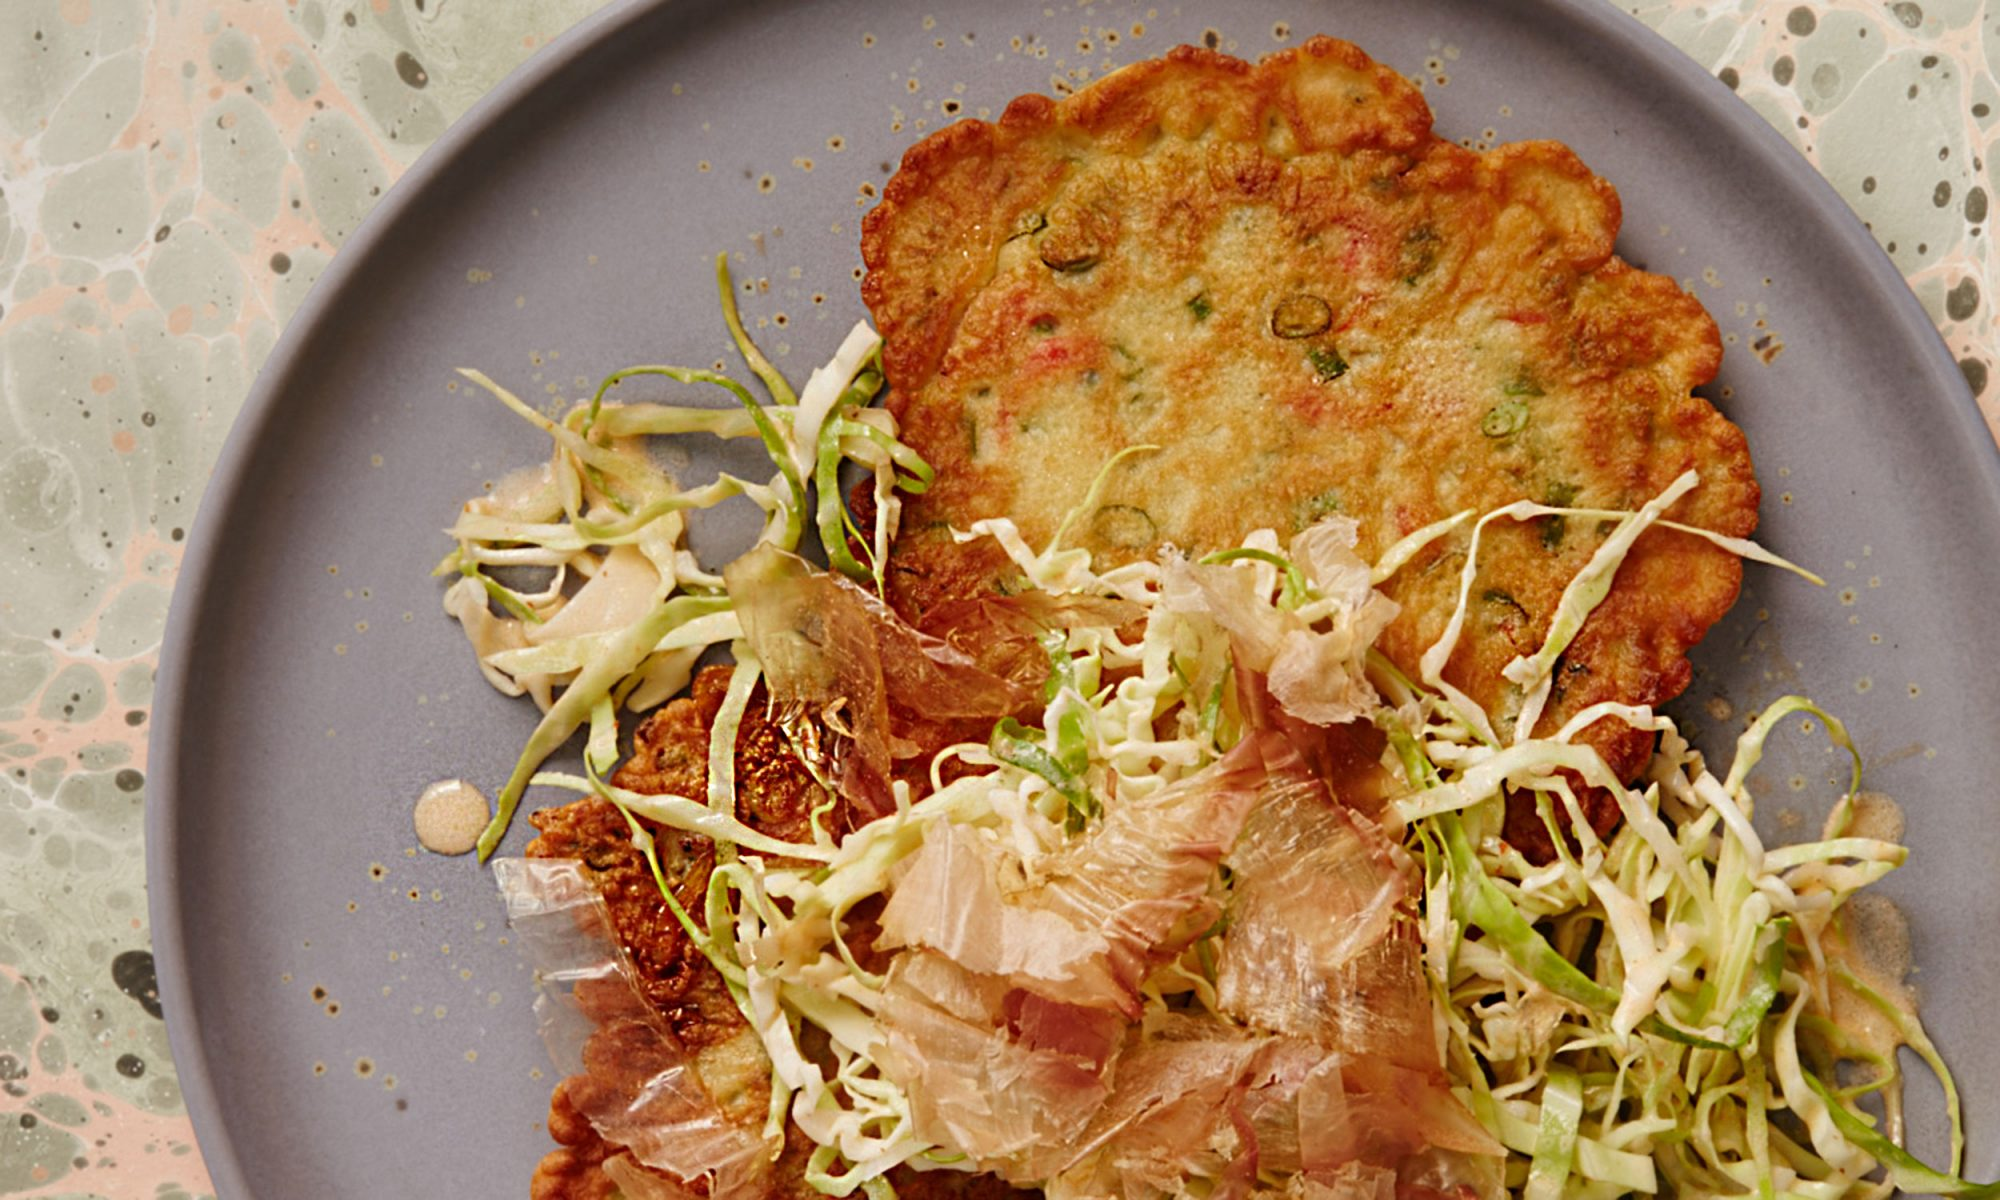 EC: This Green Onion Pancake with Spicy Slaw Redefines What a Breakfast Salad Can Be